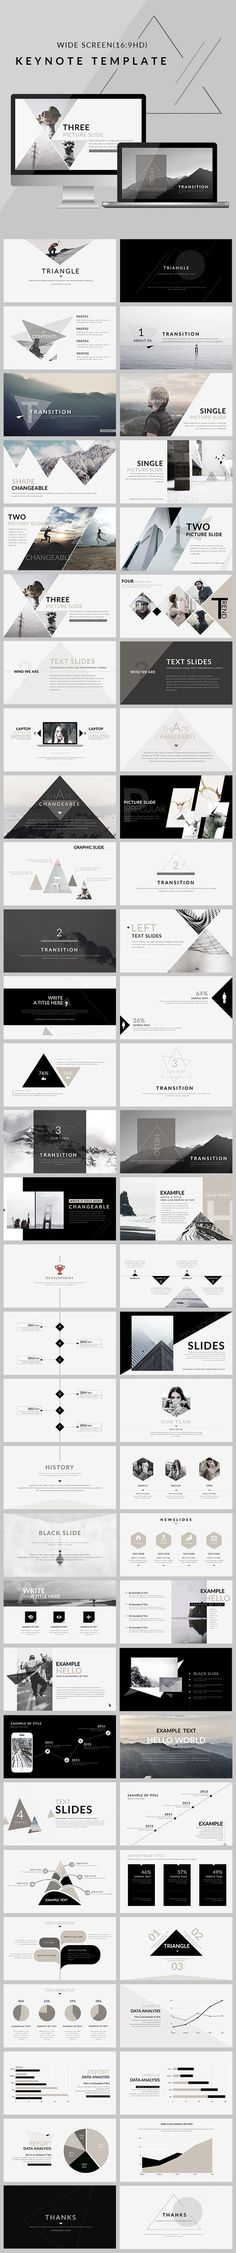 Cool Triangle - Clean trend Keynote Template • Only available here ➝ http://graphicriver.net/item/triangle-clean-trend-keynote-template/16272633?ref=pxcr: